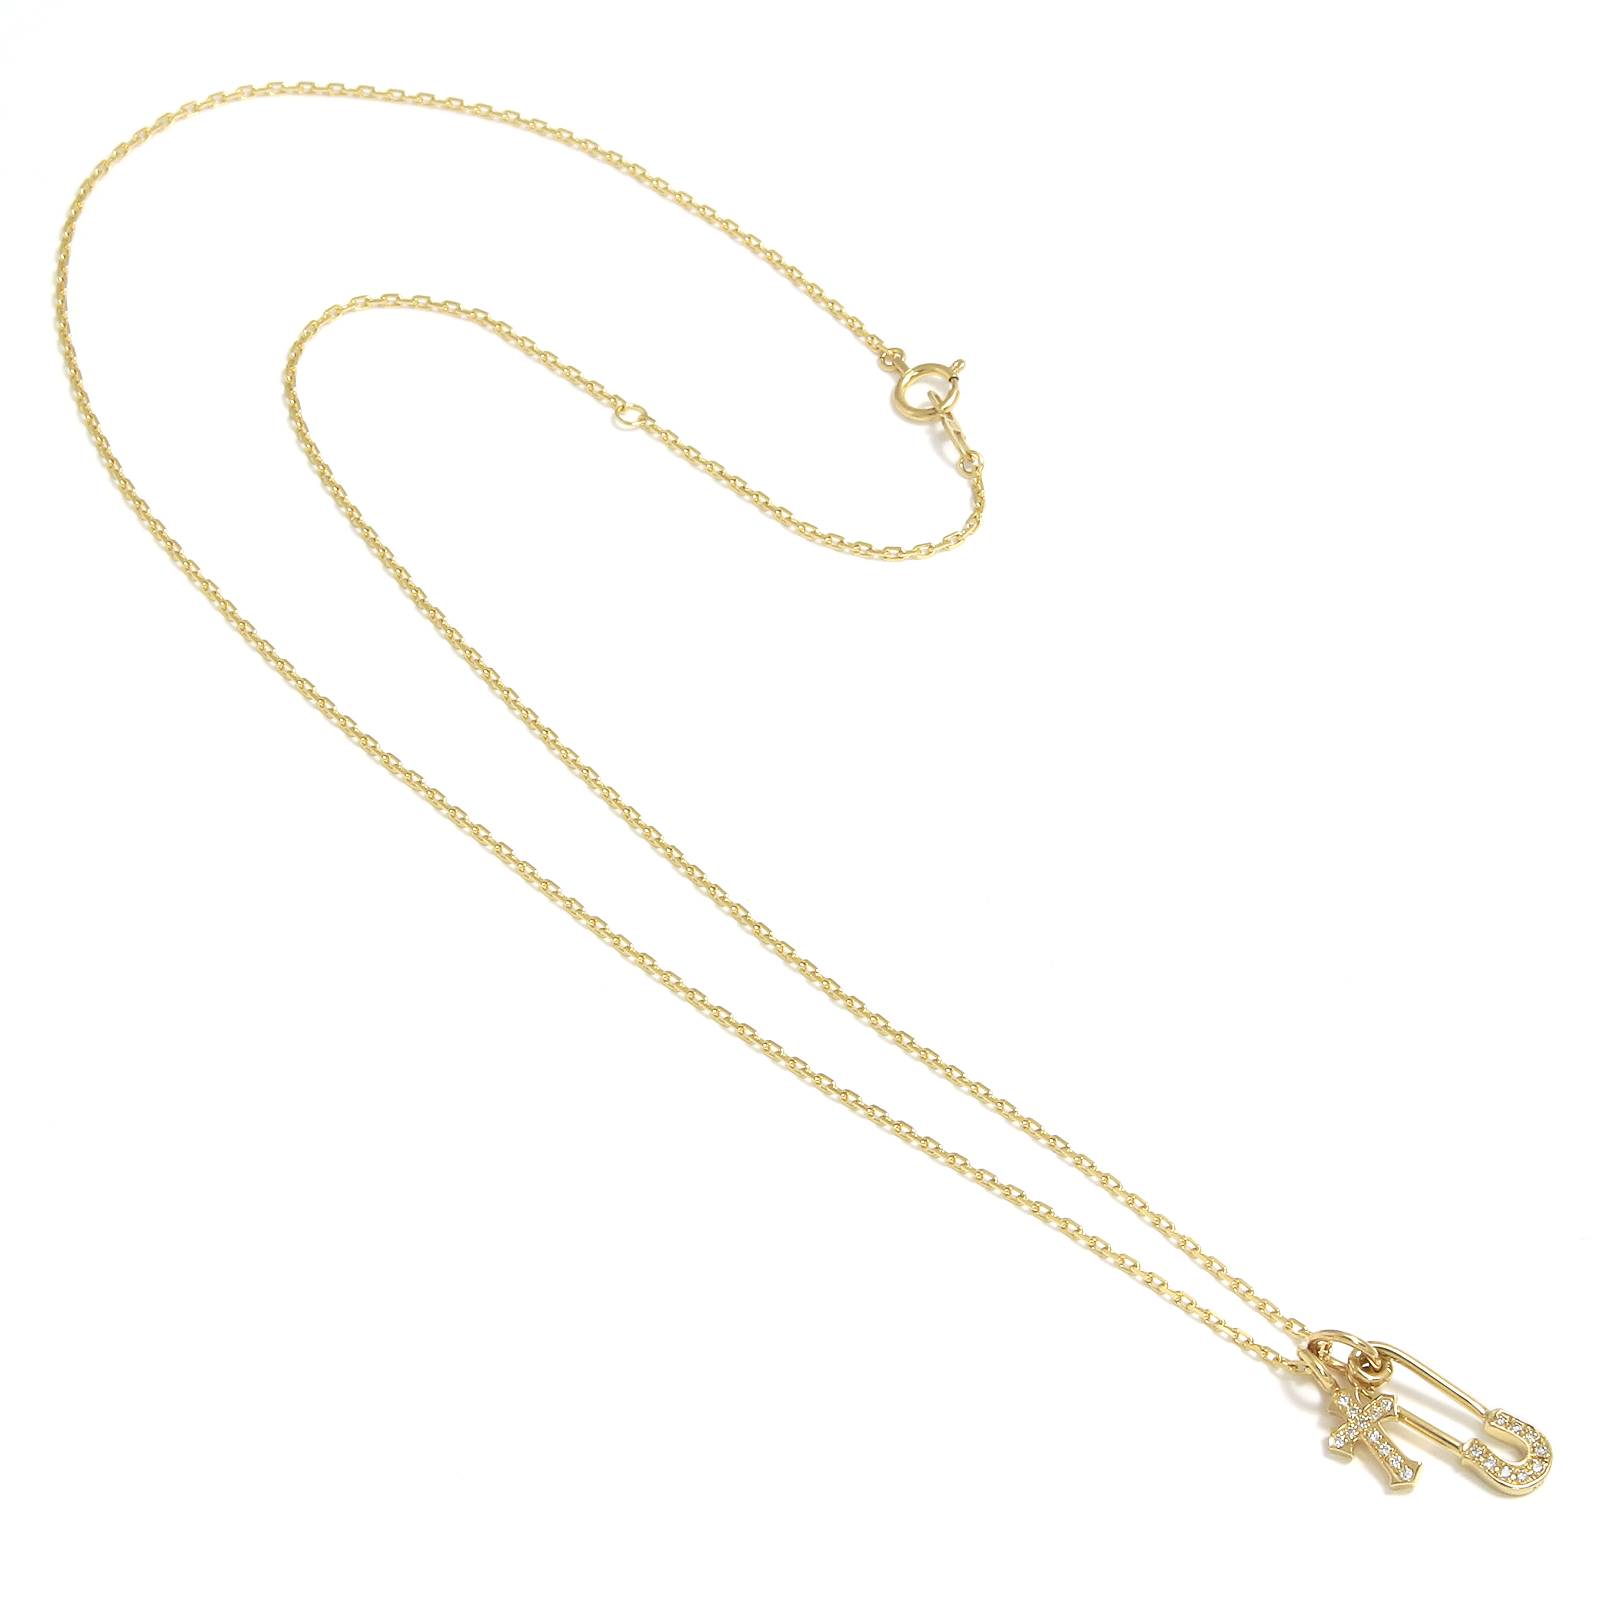 Safety Pin Charm + Little Cross Charm - K18Yellow Gold w/Diamond Set Necklace